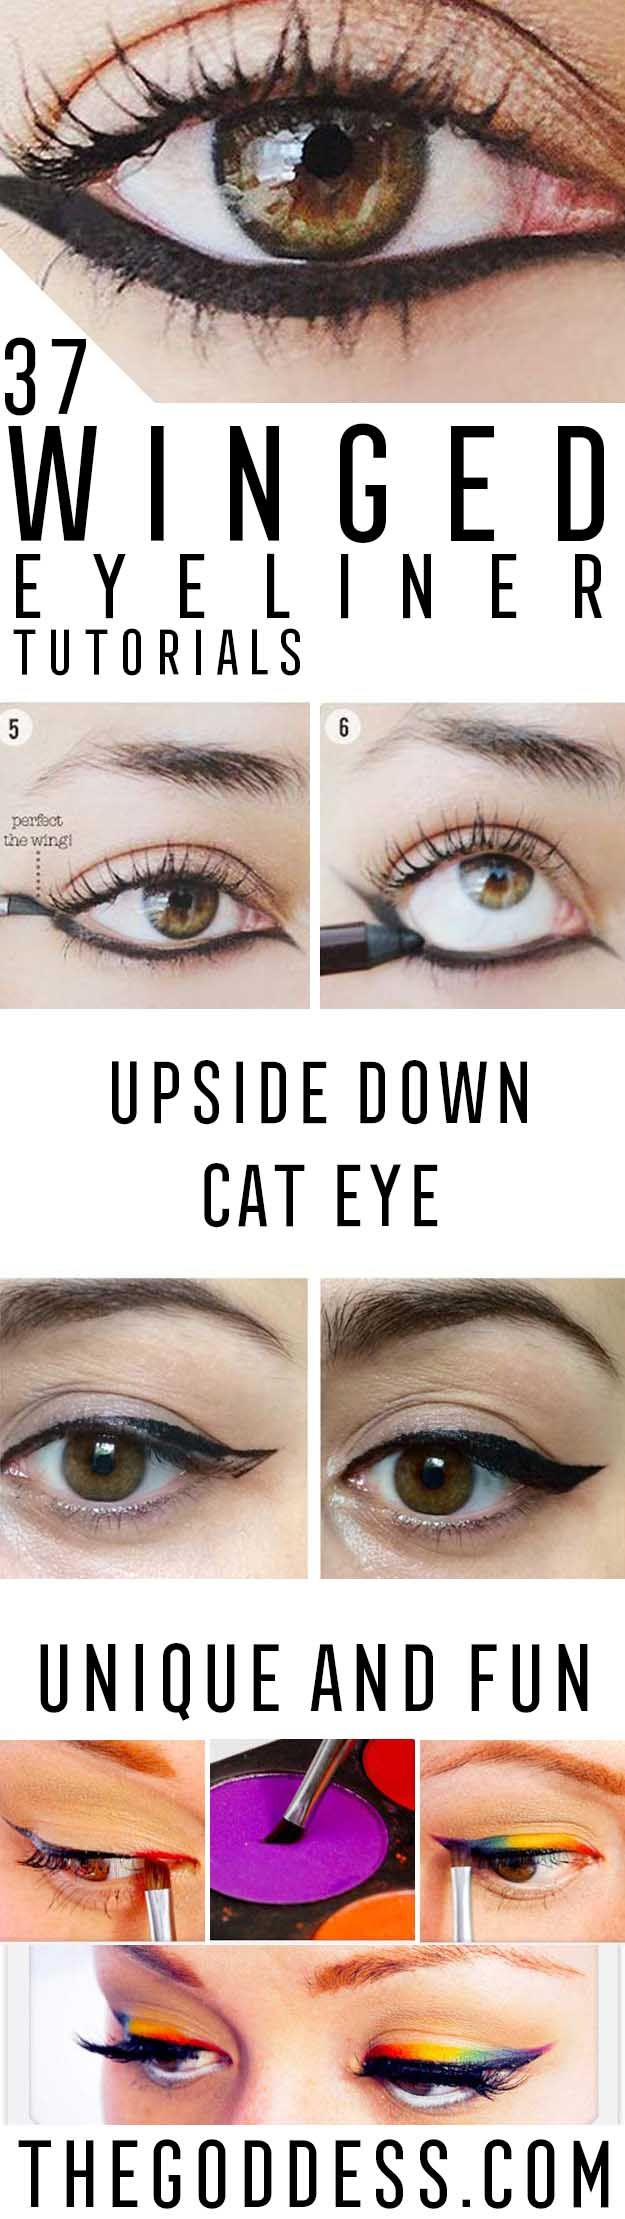 Winged Eyeliner Tutorials - Easy Step By Step Tutorials For Beginners and Hacks Using Tape and a Spoon, Liquid Liner, Thing Pencil Tricks and Awesome Guides for Hooded Eyes - Short Video Tutorial for Perfect Simple Dramatic Looks - thegoddess.com/winged-eyeliner-tutorials